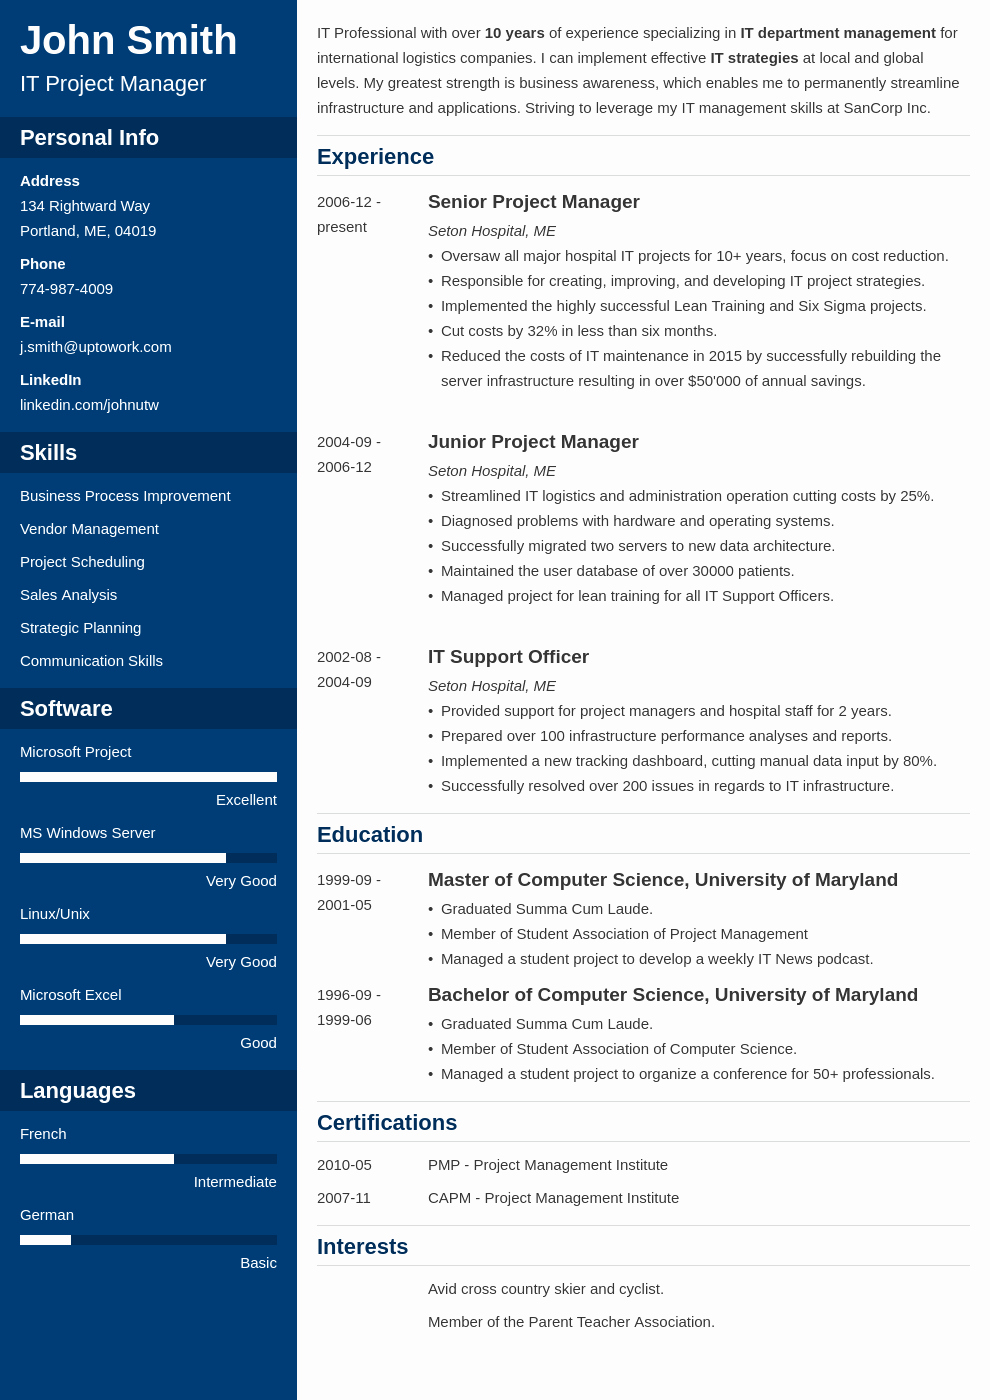 Download Free Professional Resume Templates Lovely 20 Resume Templates [download] Create Your Resume In 5